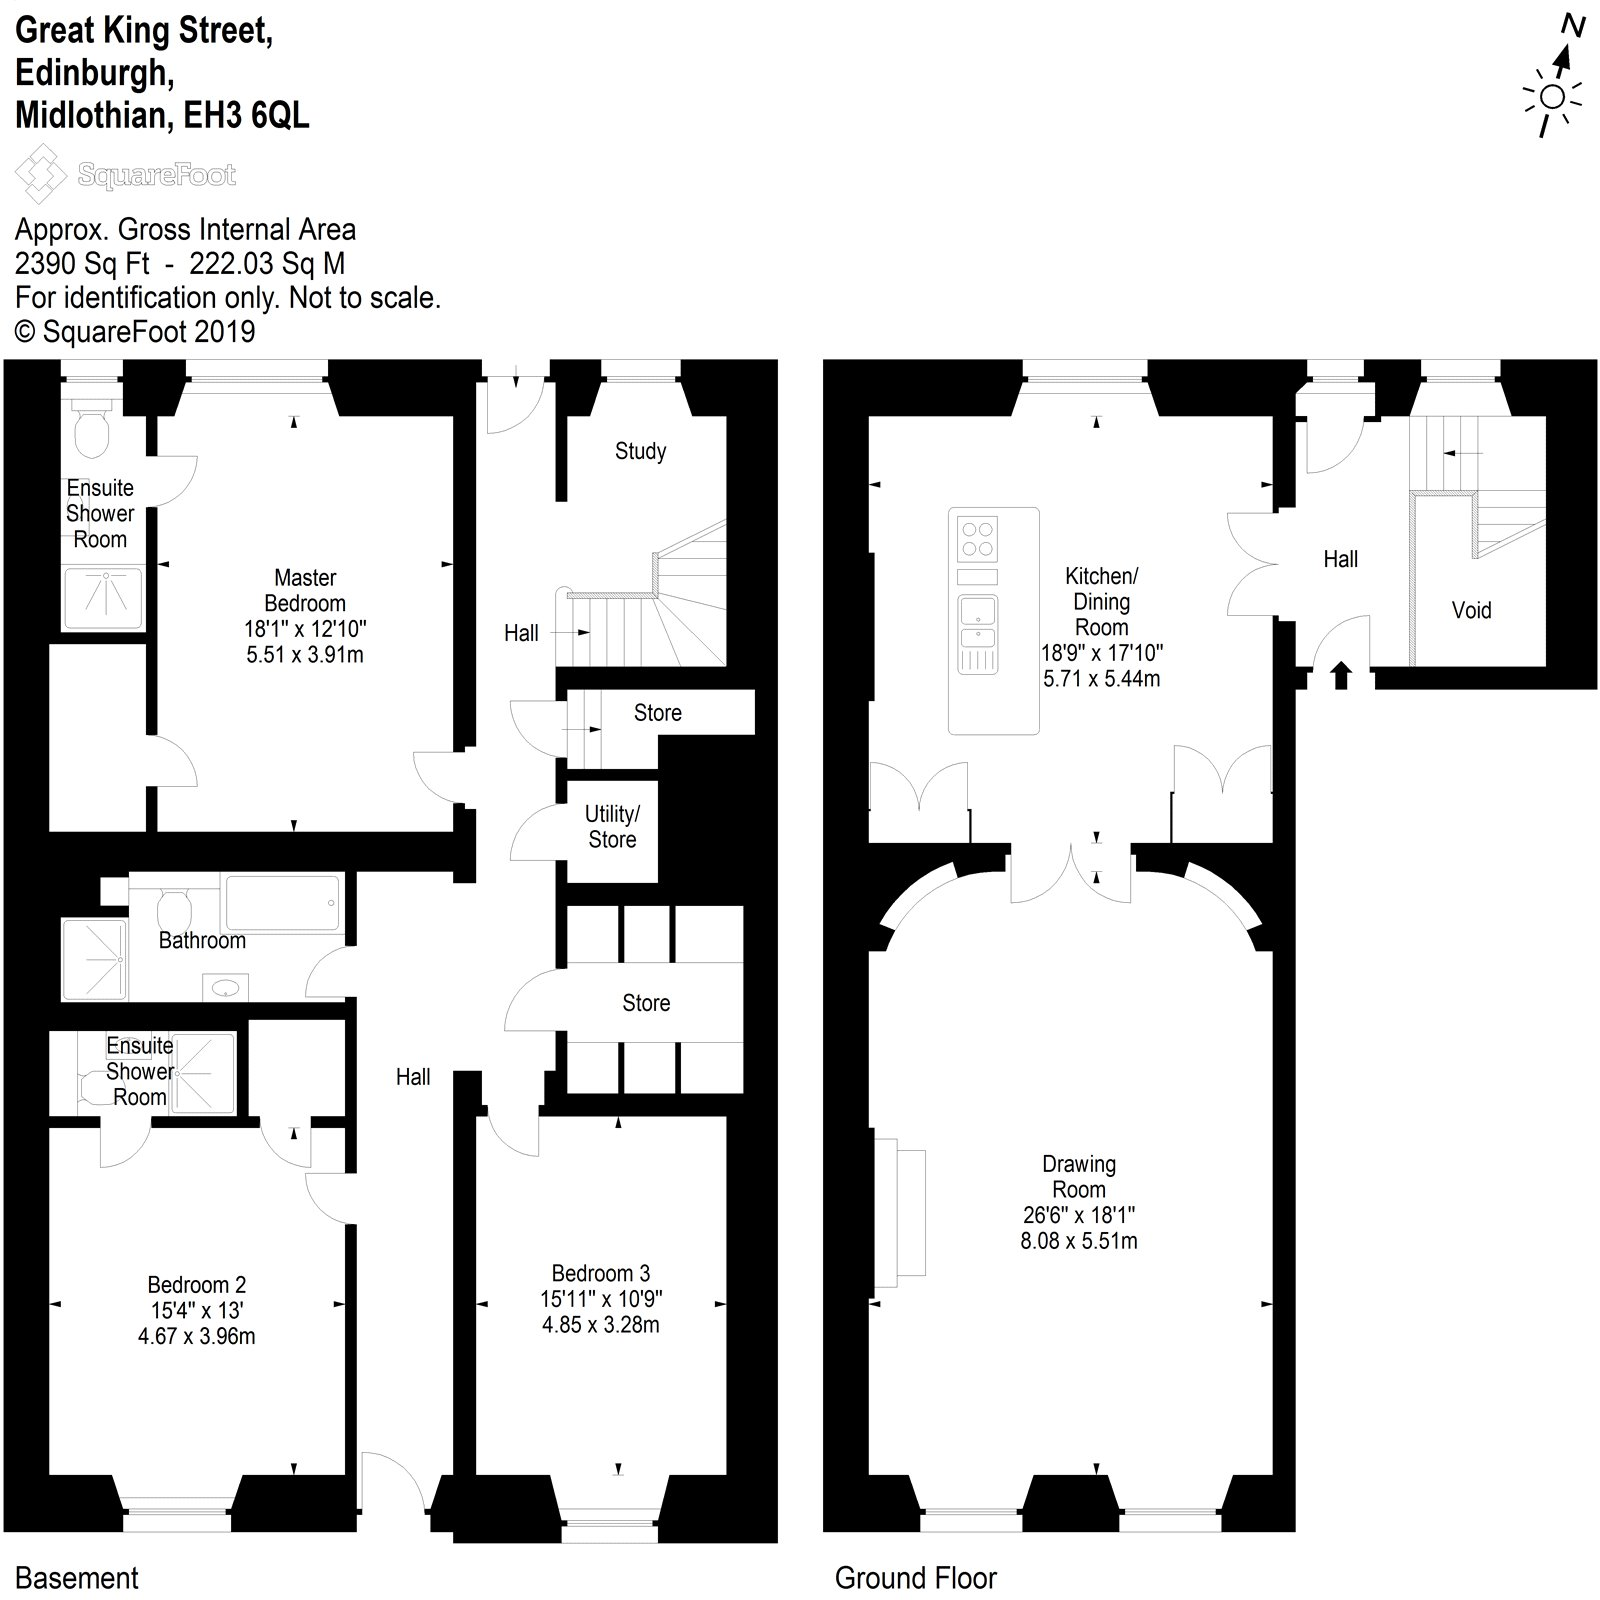 Floorplans for Great King Street, Edinburgh, EH3